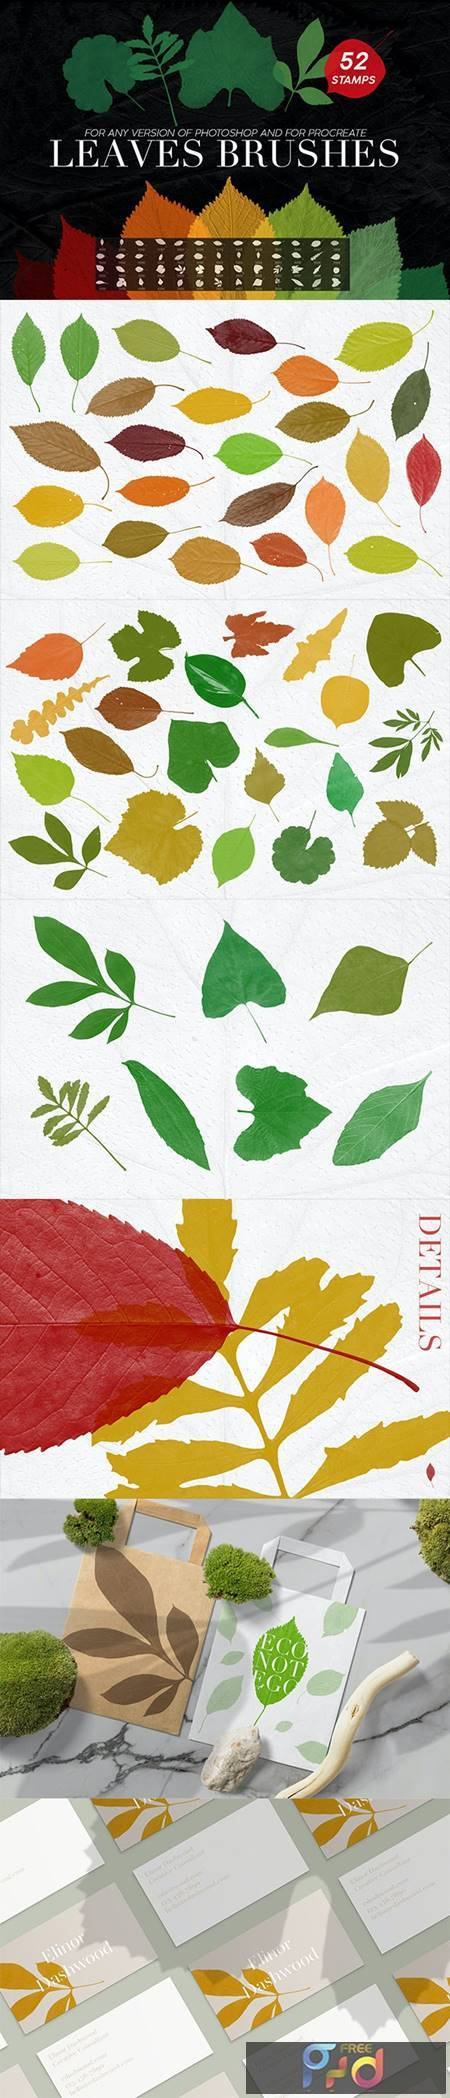 52 Leaves Photoshop Stamp Brushes 27969587 1